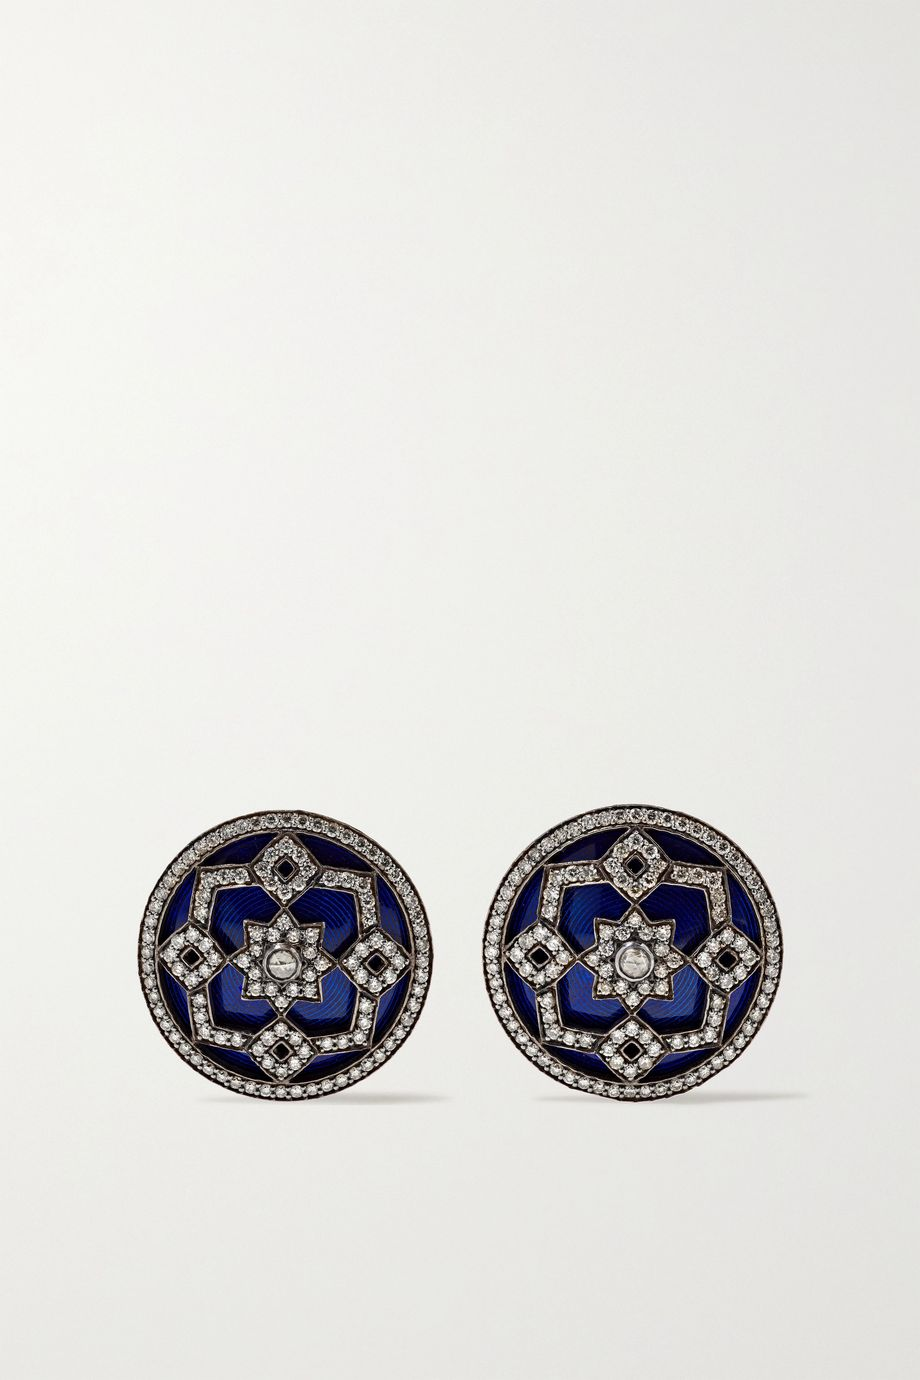 Amrapali 18-karat gold and rhodium-plated, diamond and enamel earrings